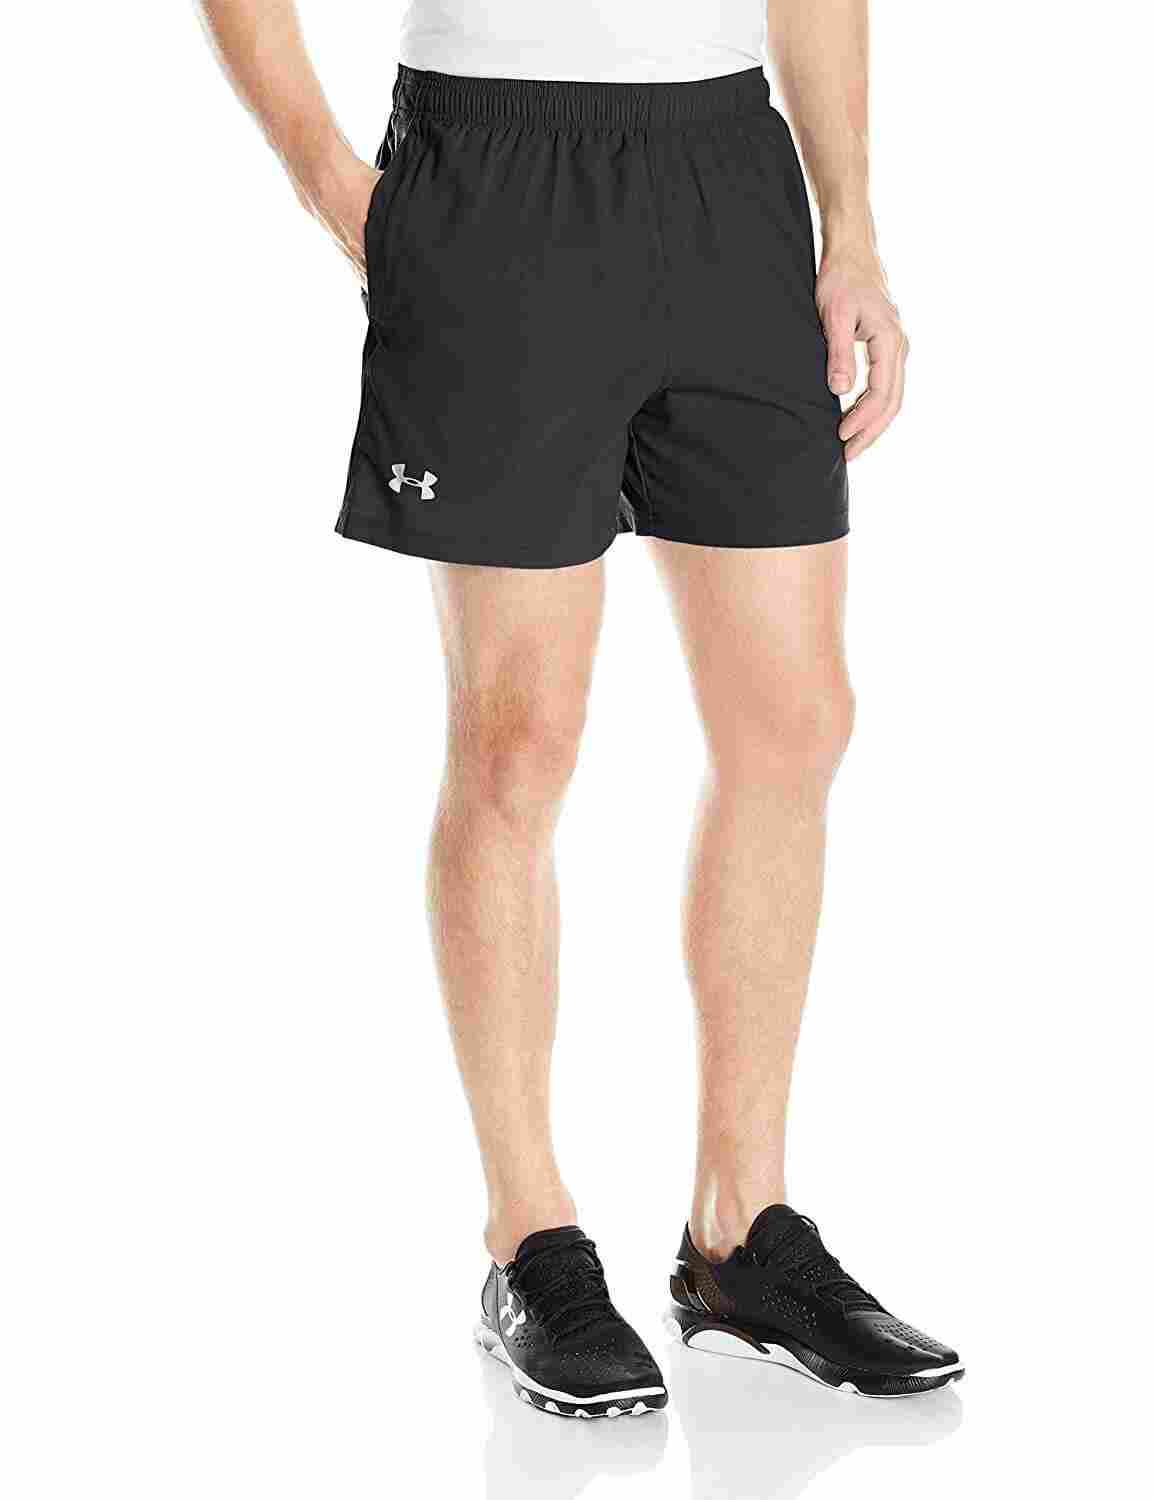 5. Under Armour Women's Fly-By Running Shorts